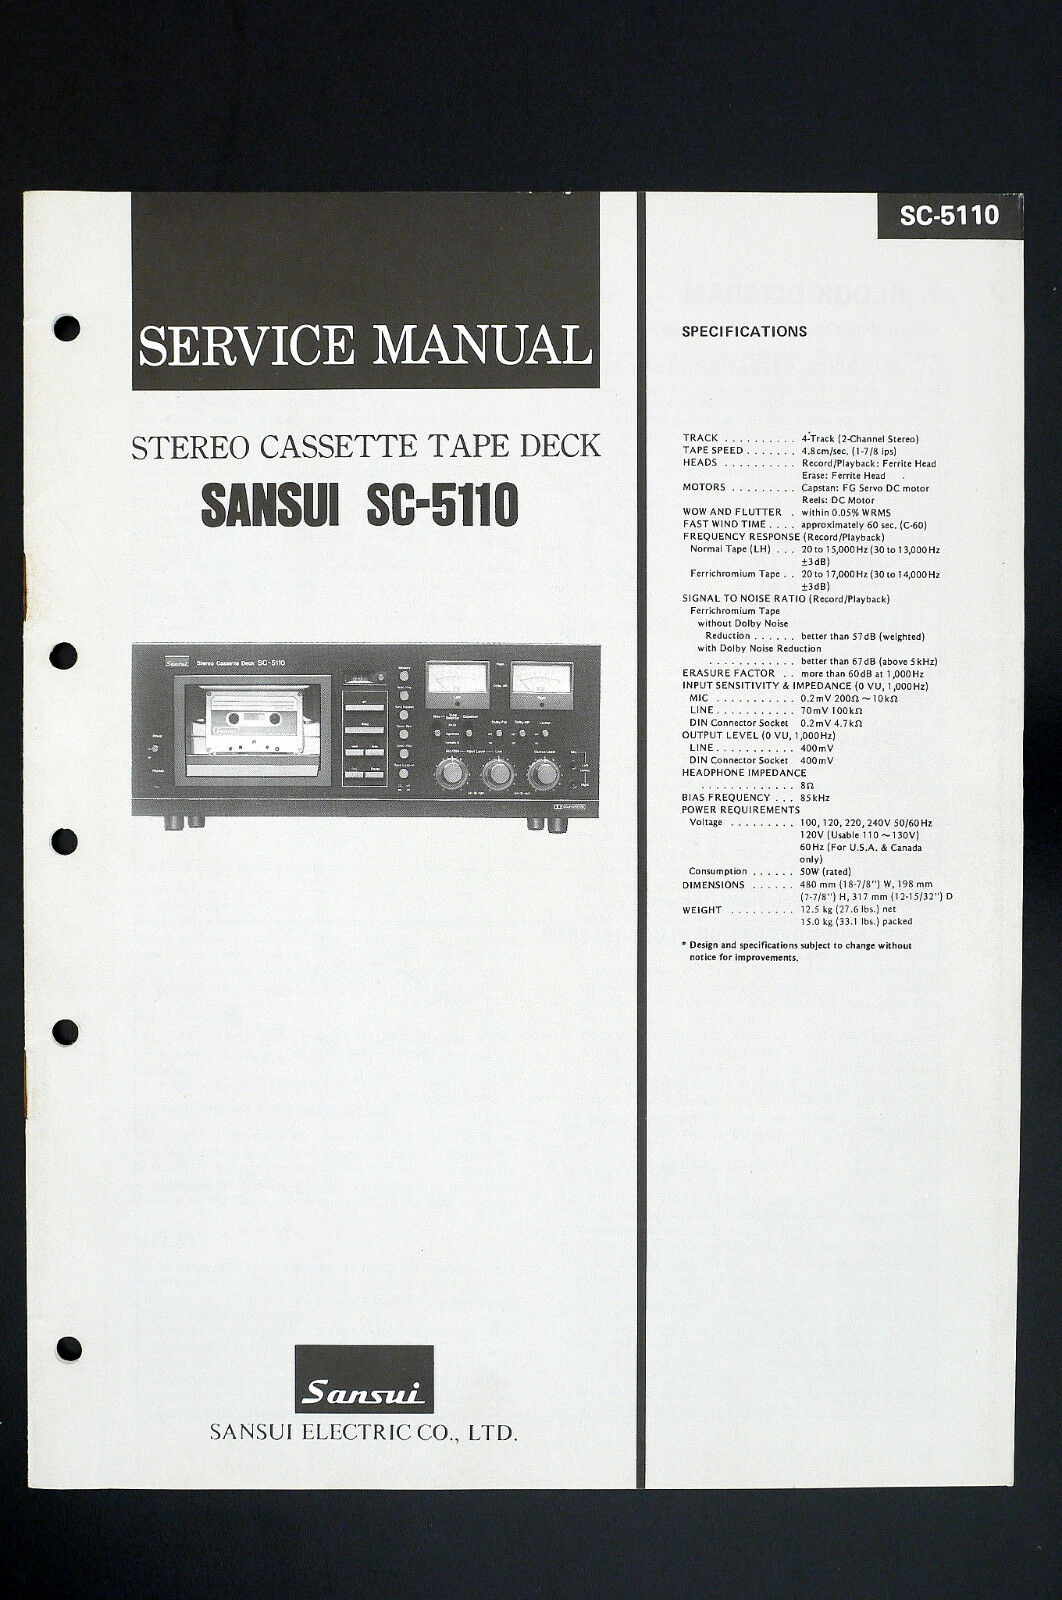 Tape Deck Wiring Diagram Library Sansui Car Stereo Harness Sc 5110 Original Cassette Service Manual 1 Of